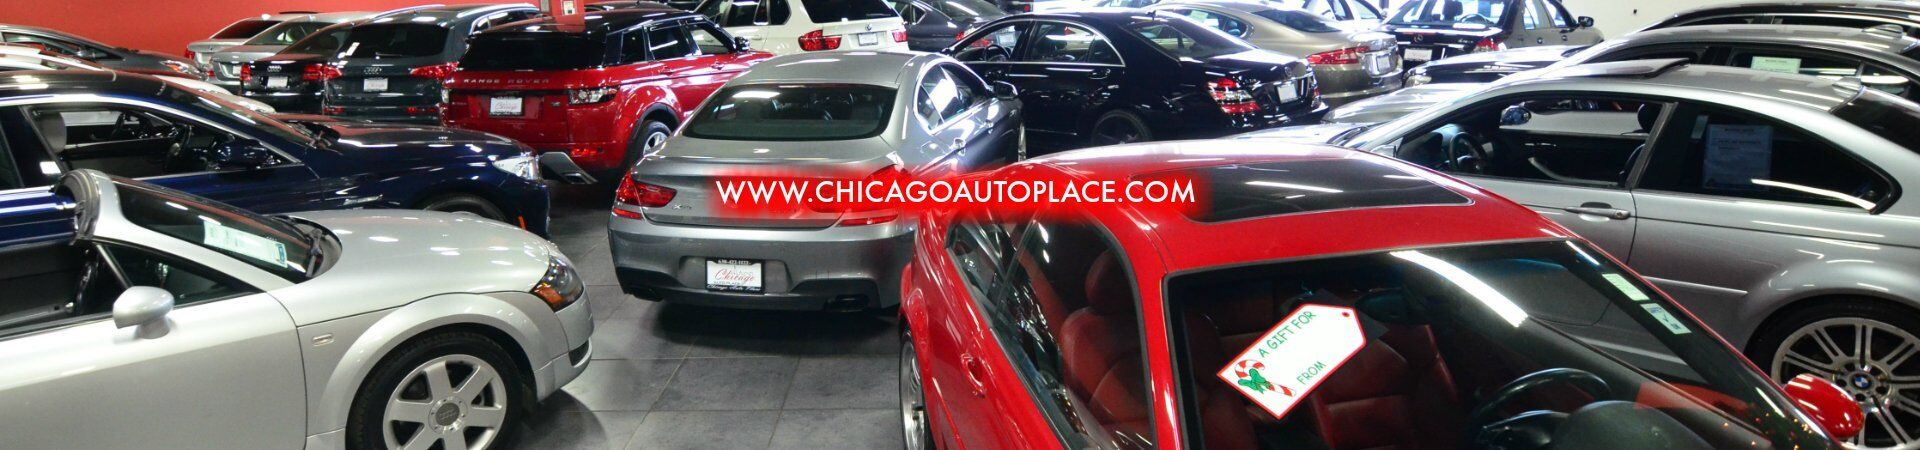 Chicago Auto Place Showroom 2